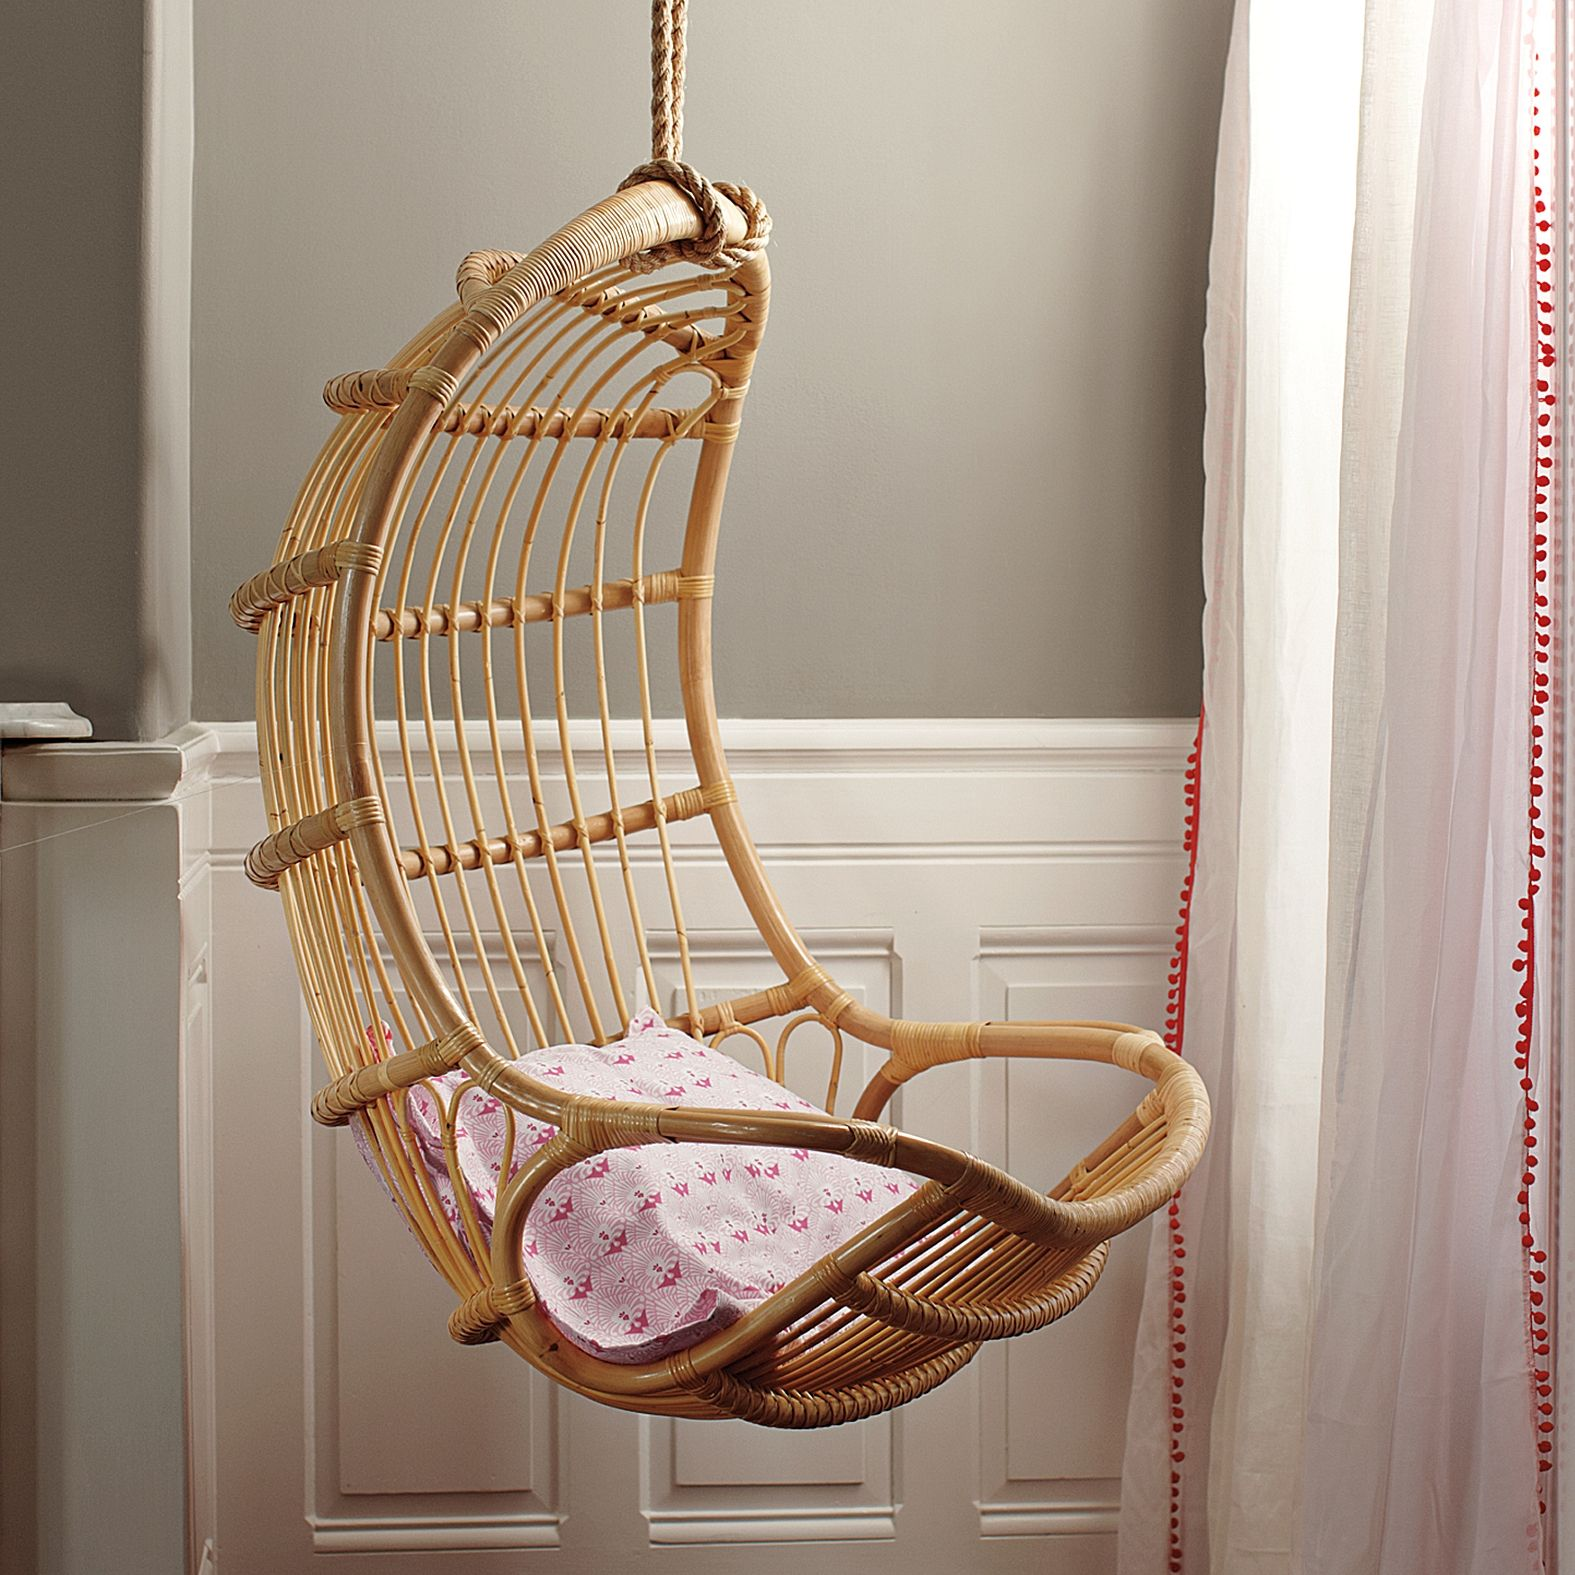 Hanging rattan chair luvlive pinterest rattan nursery and